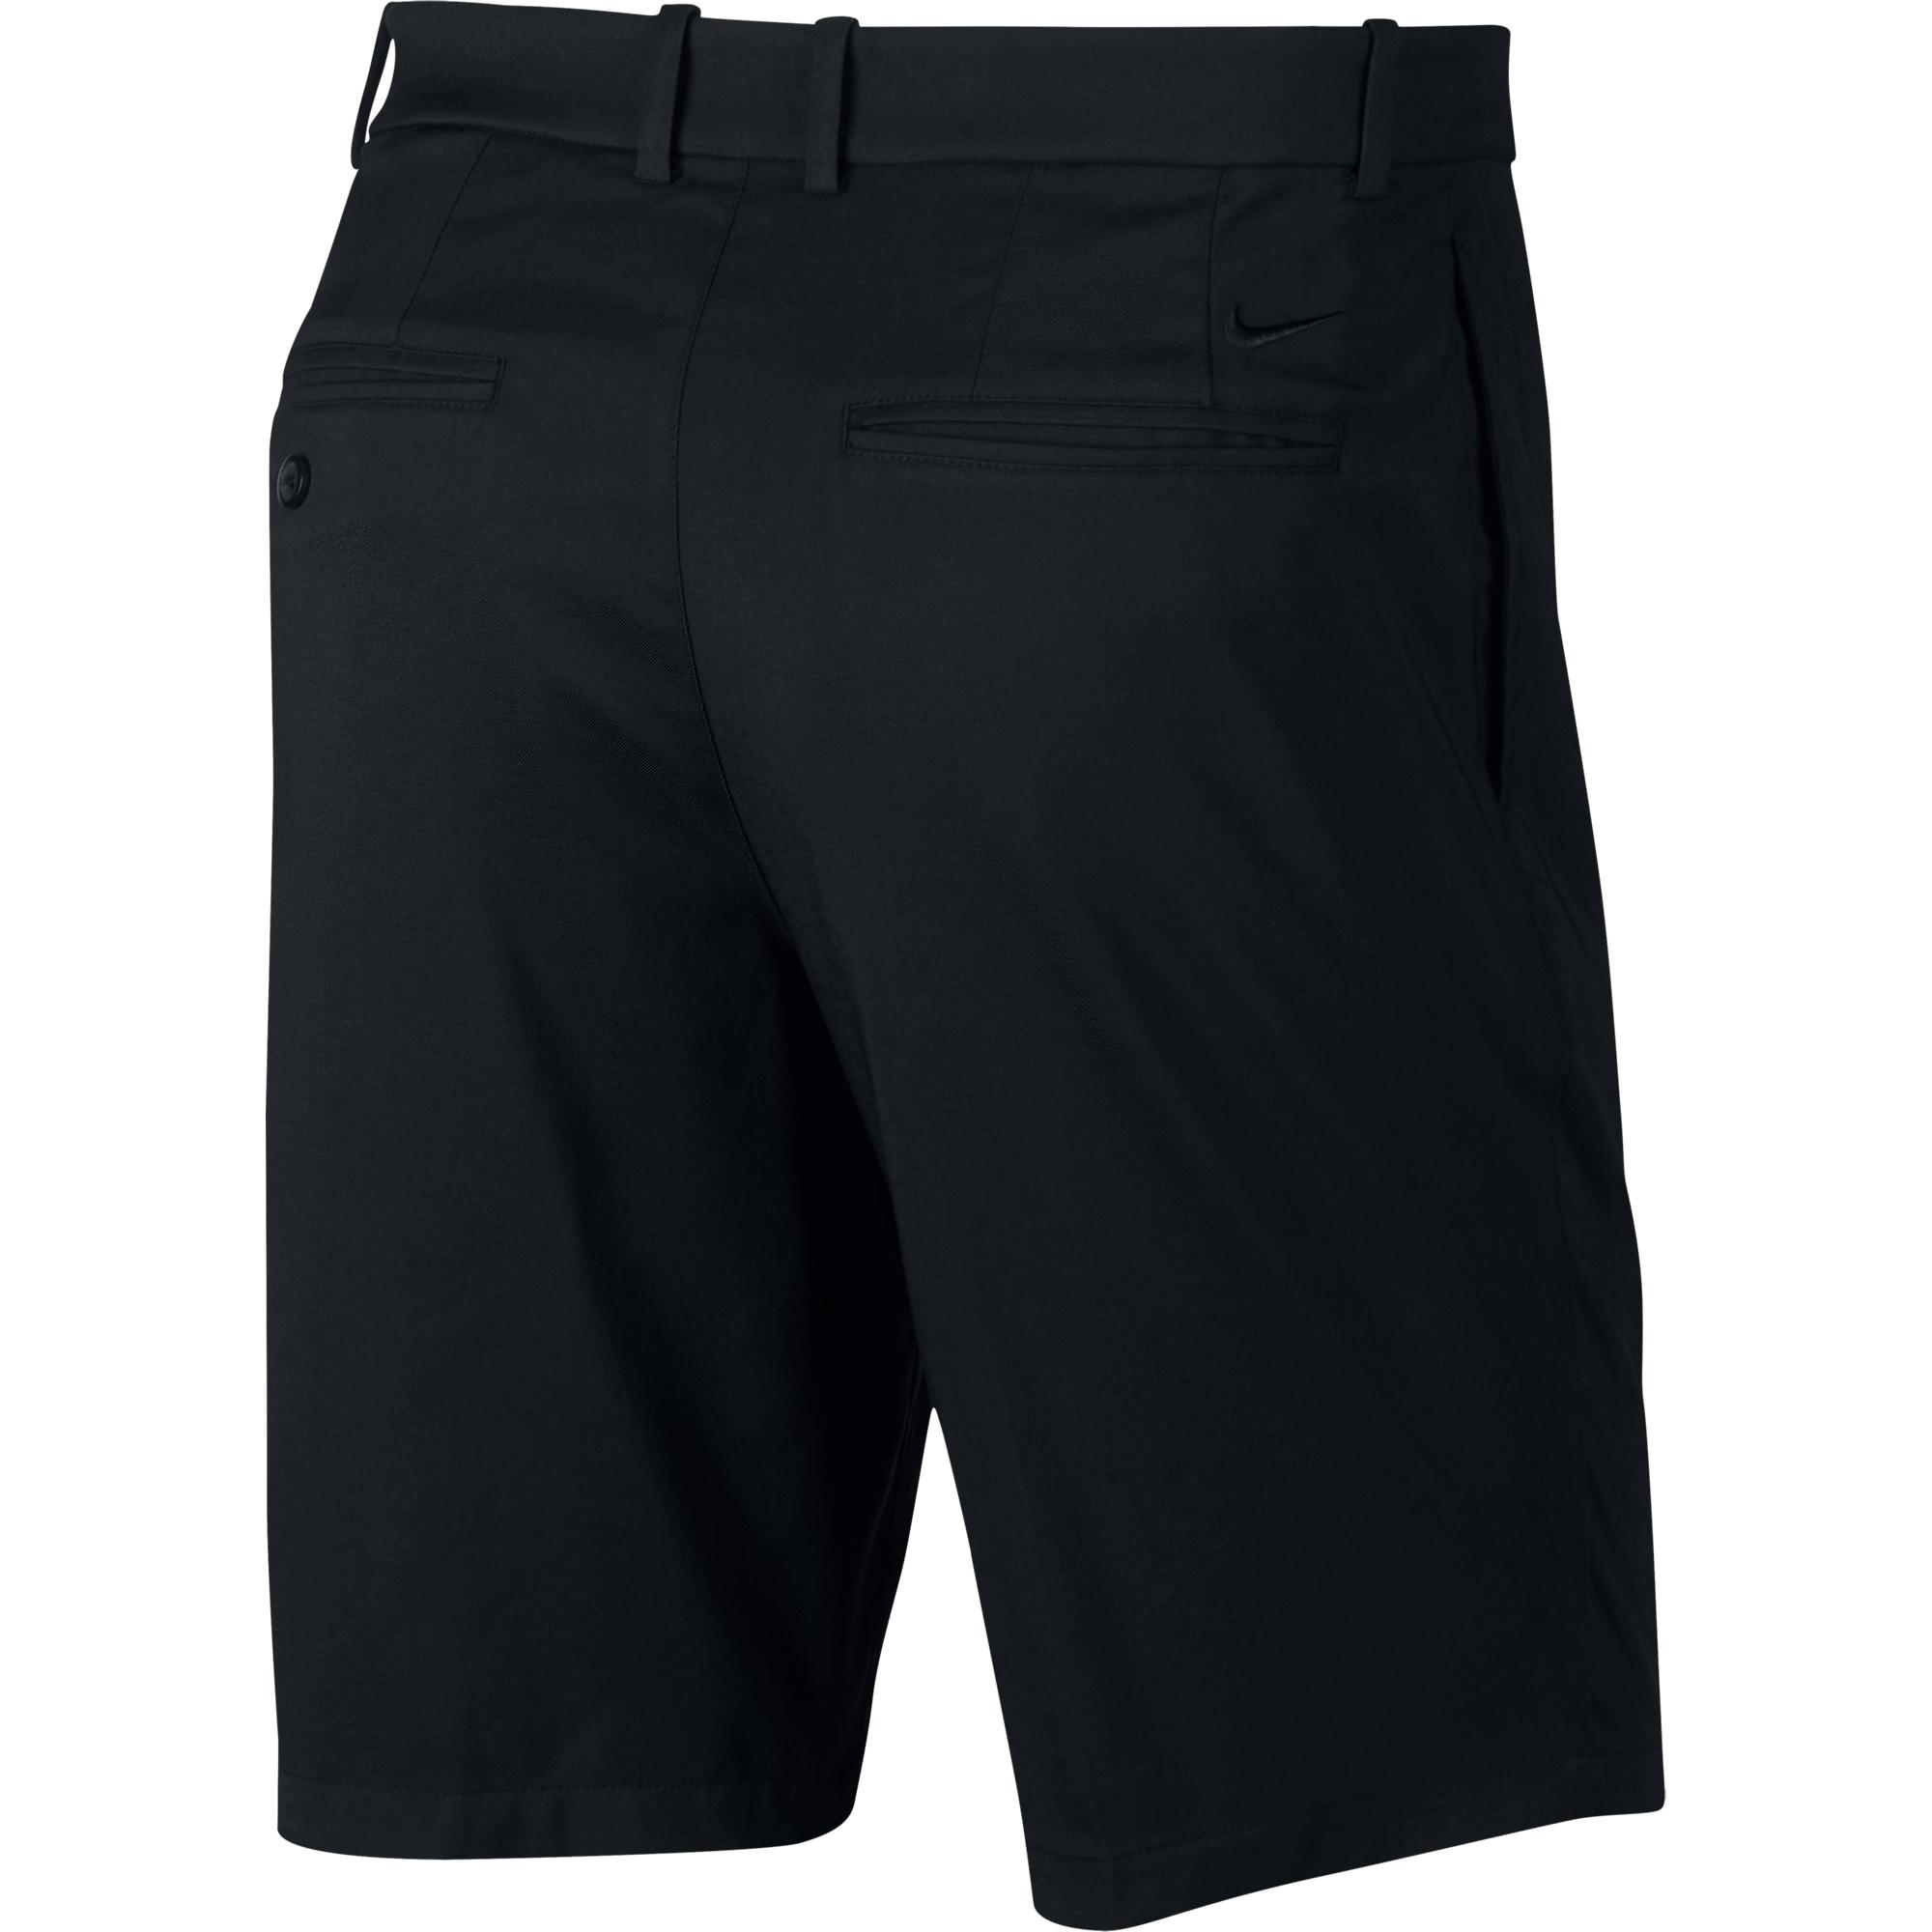 Men's Flex Short